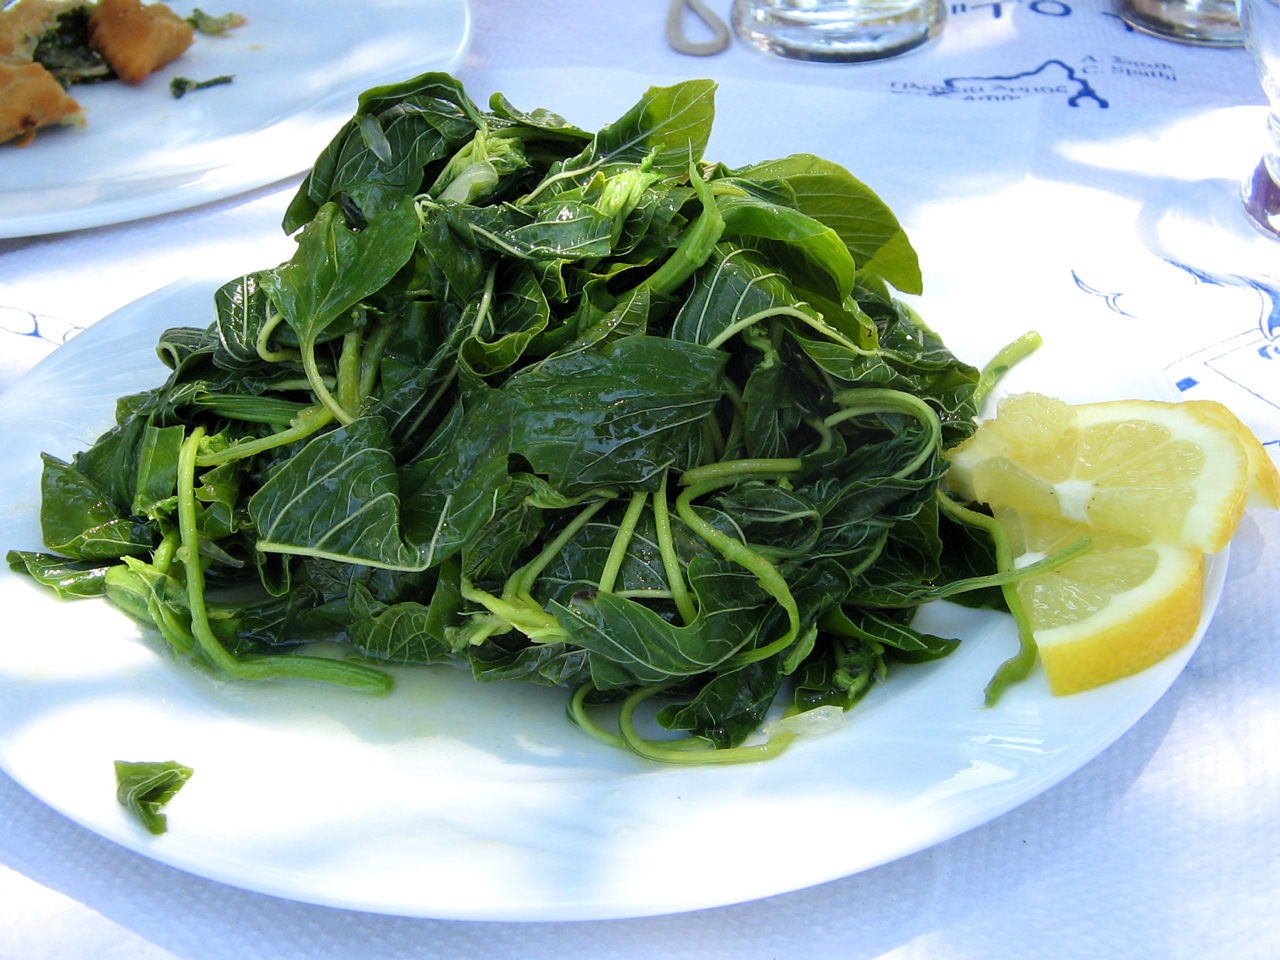 greens, cretan food, gastronomy, cuisine, health